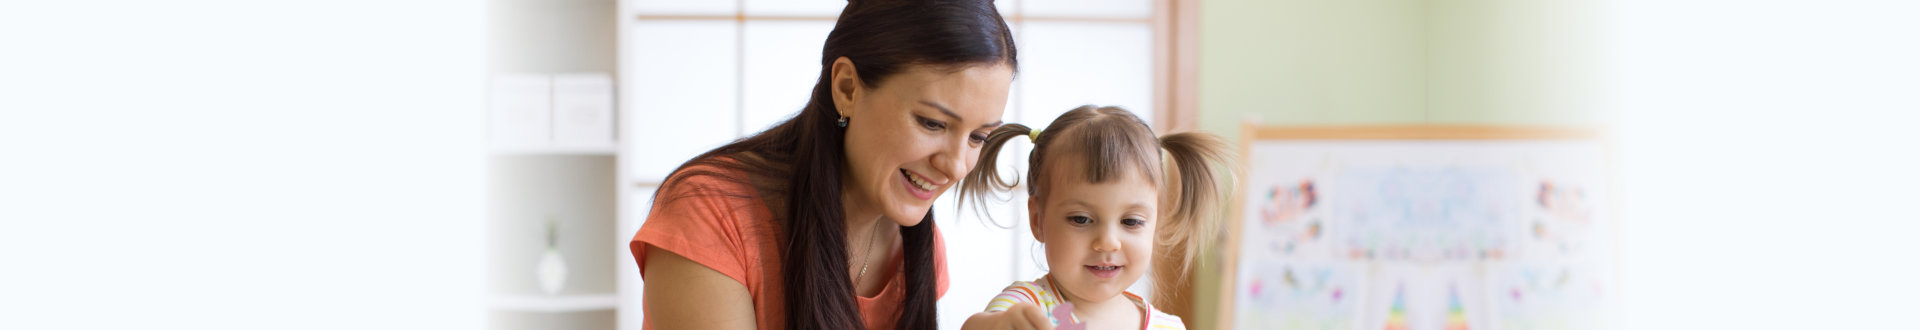 caregiver guiding the child to solve the puzzle